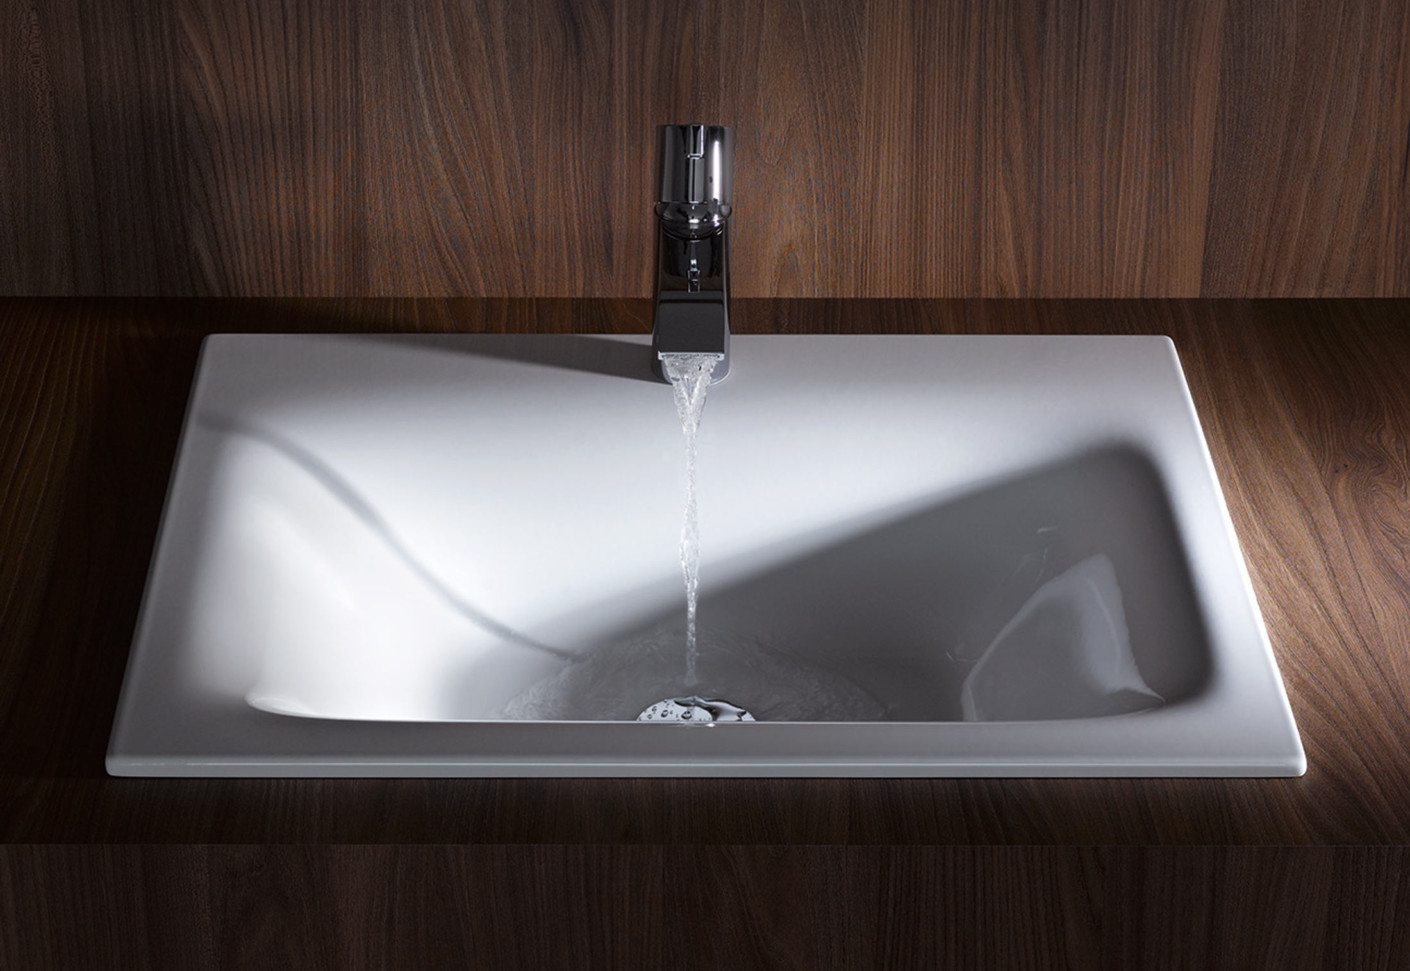 Bettelux Built In Washbasin By Bette Stylepark